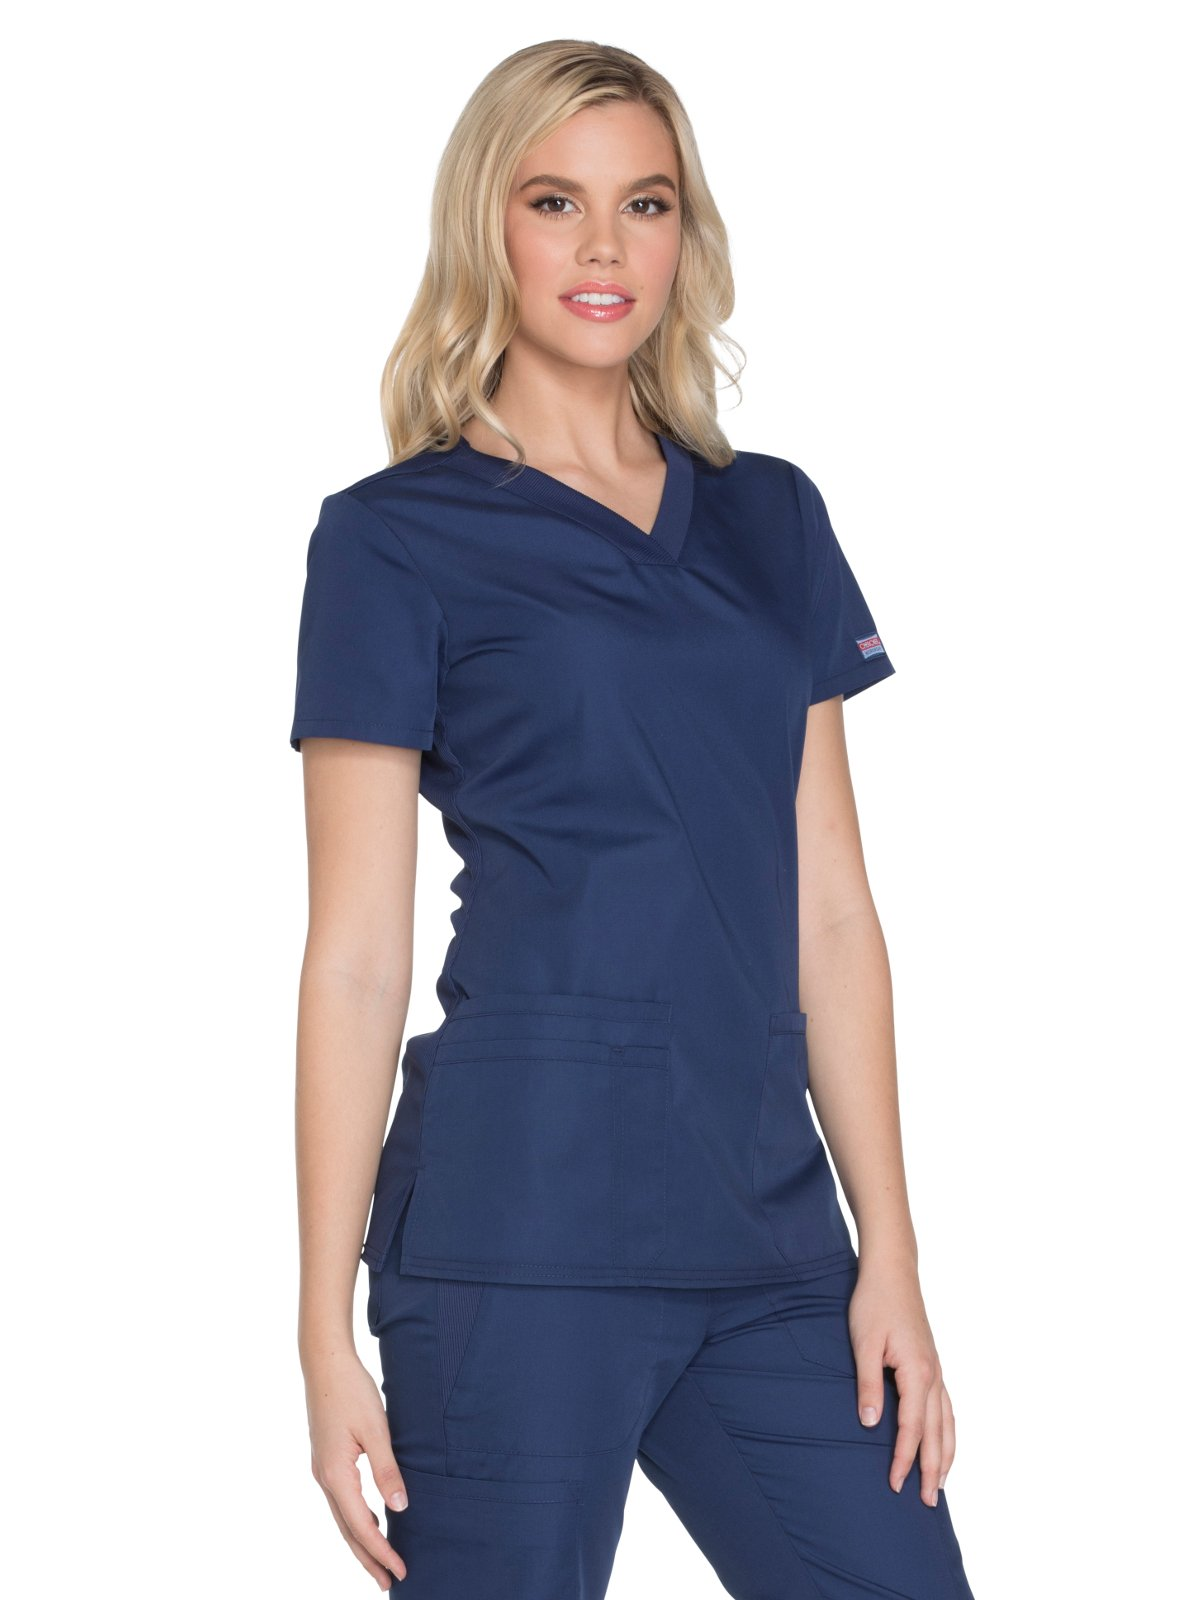 Cherokee Workwear Originals Women's Knit V-Neck Solid Scrub Top Small Navy